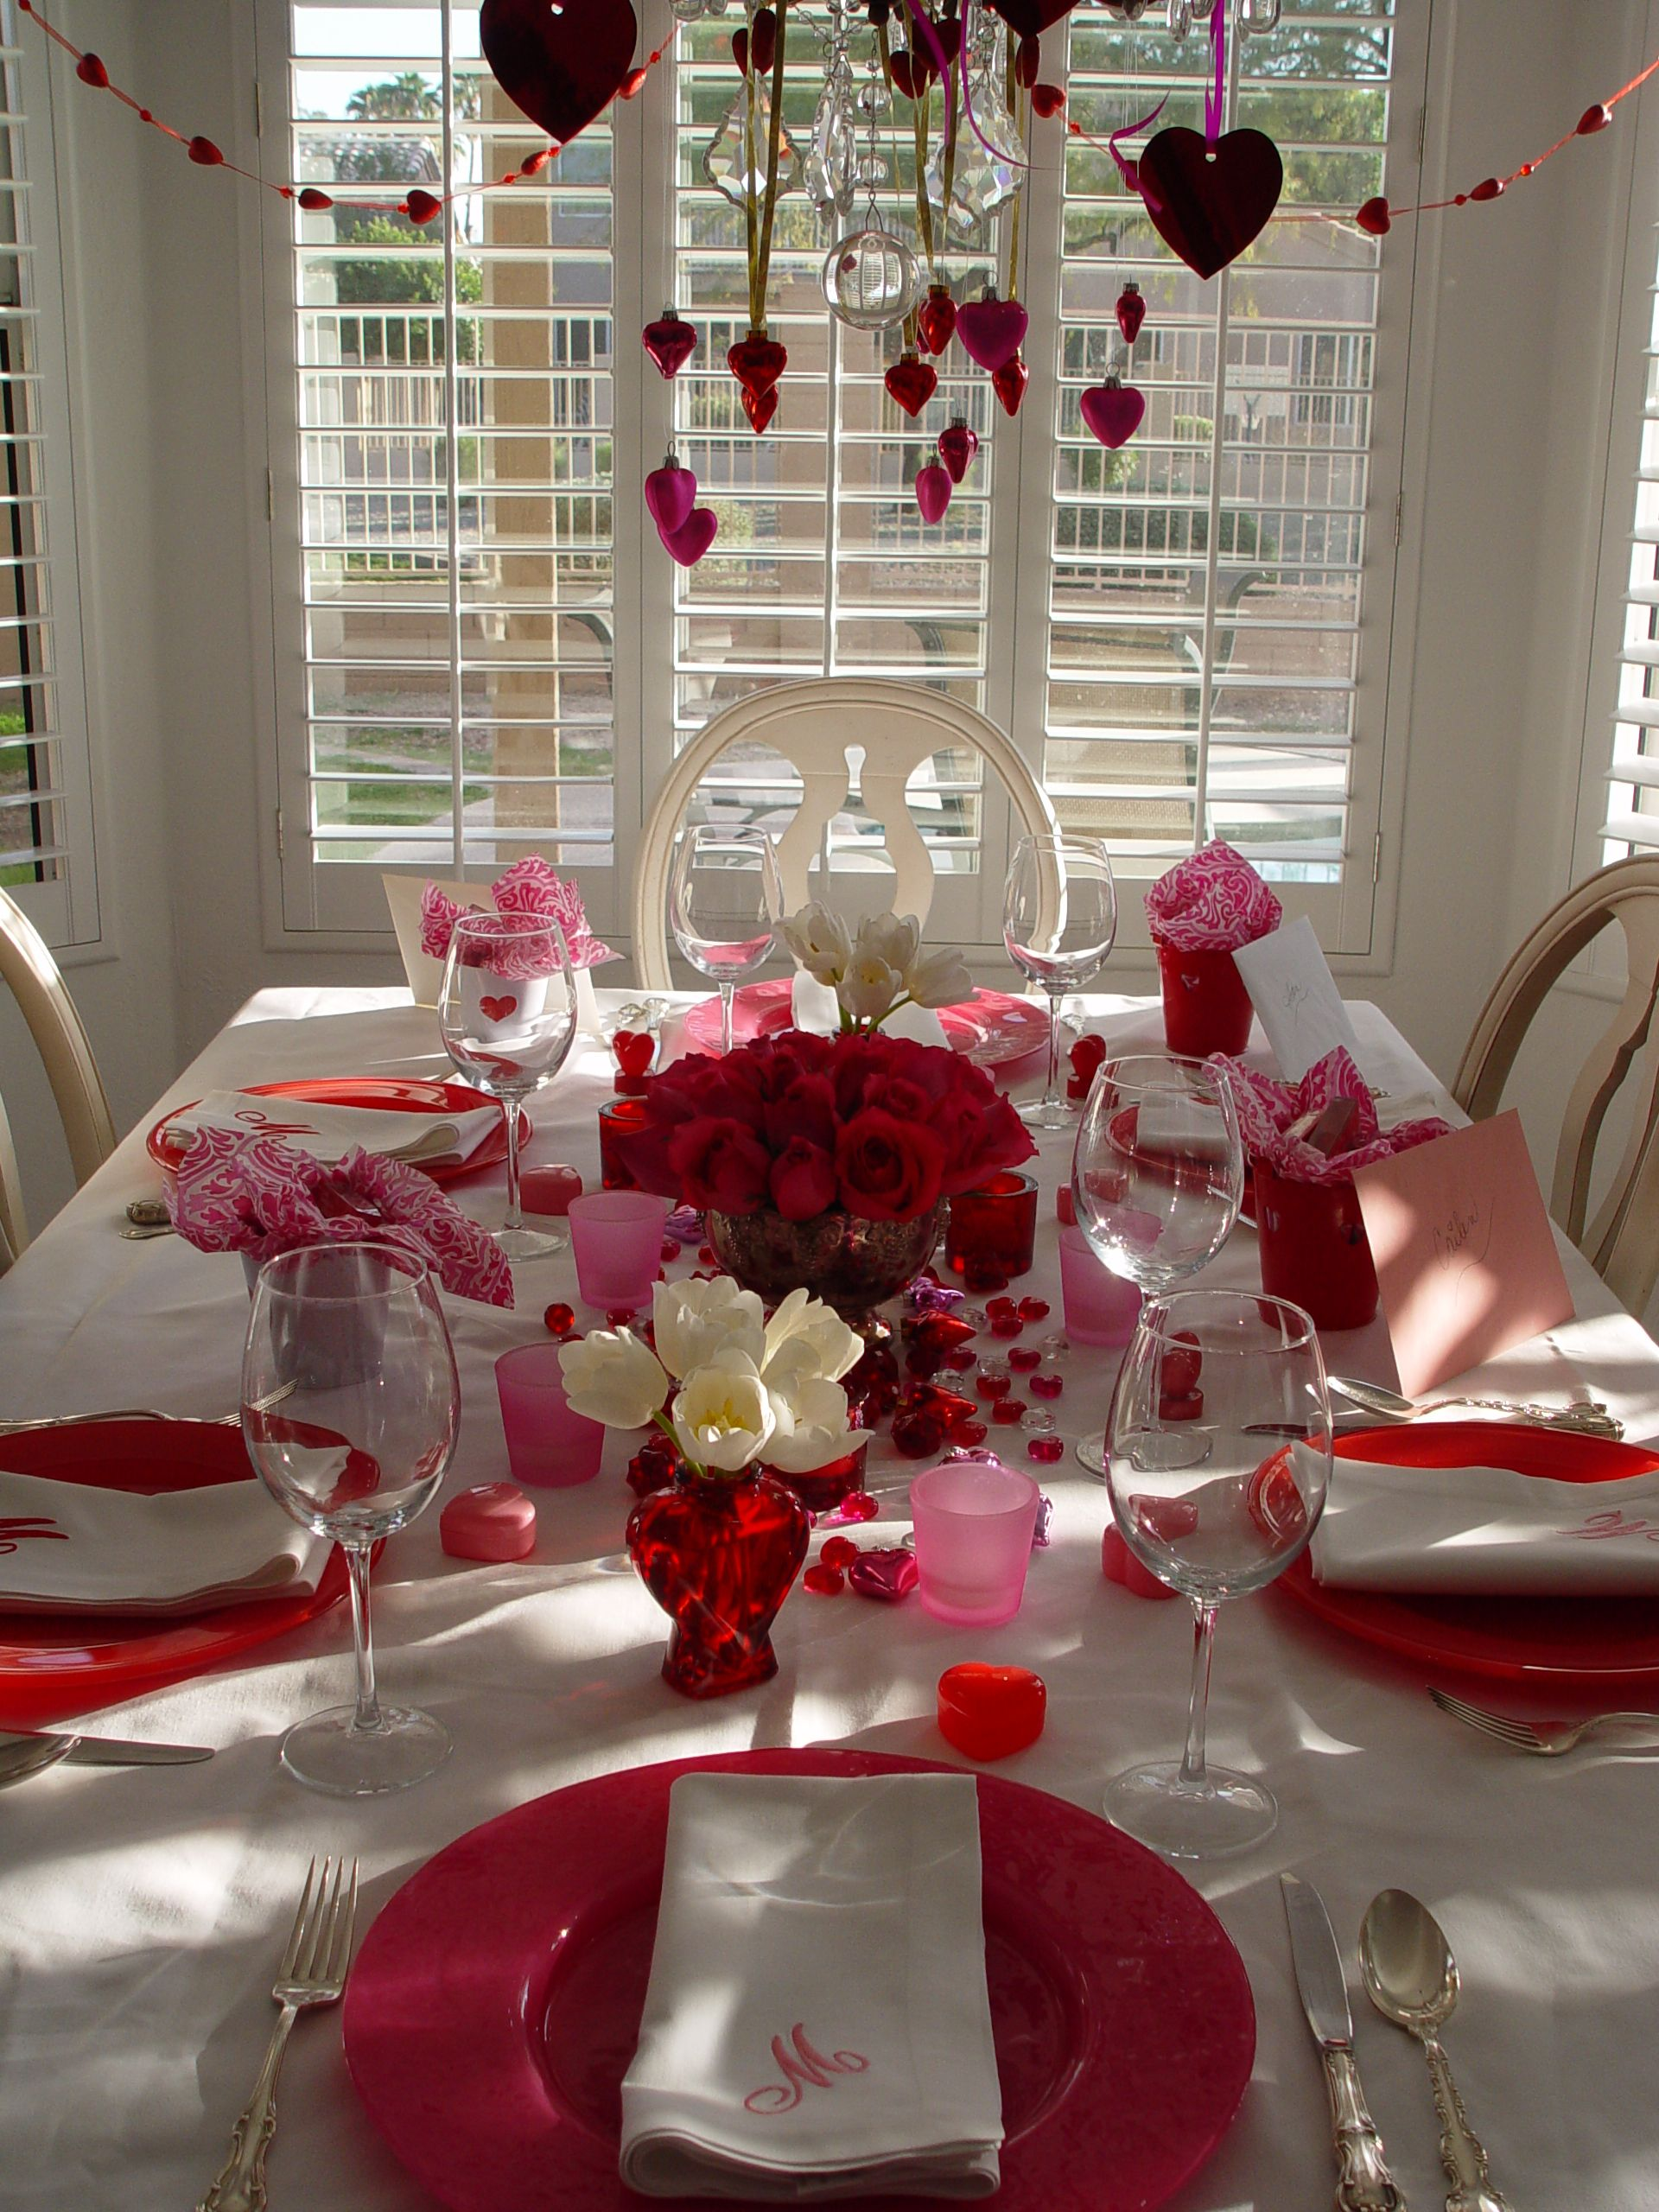 Awesome Valentine Decorations Ideas for Home There